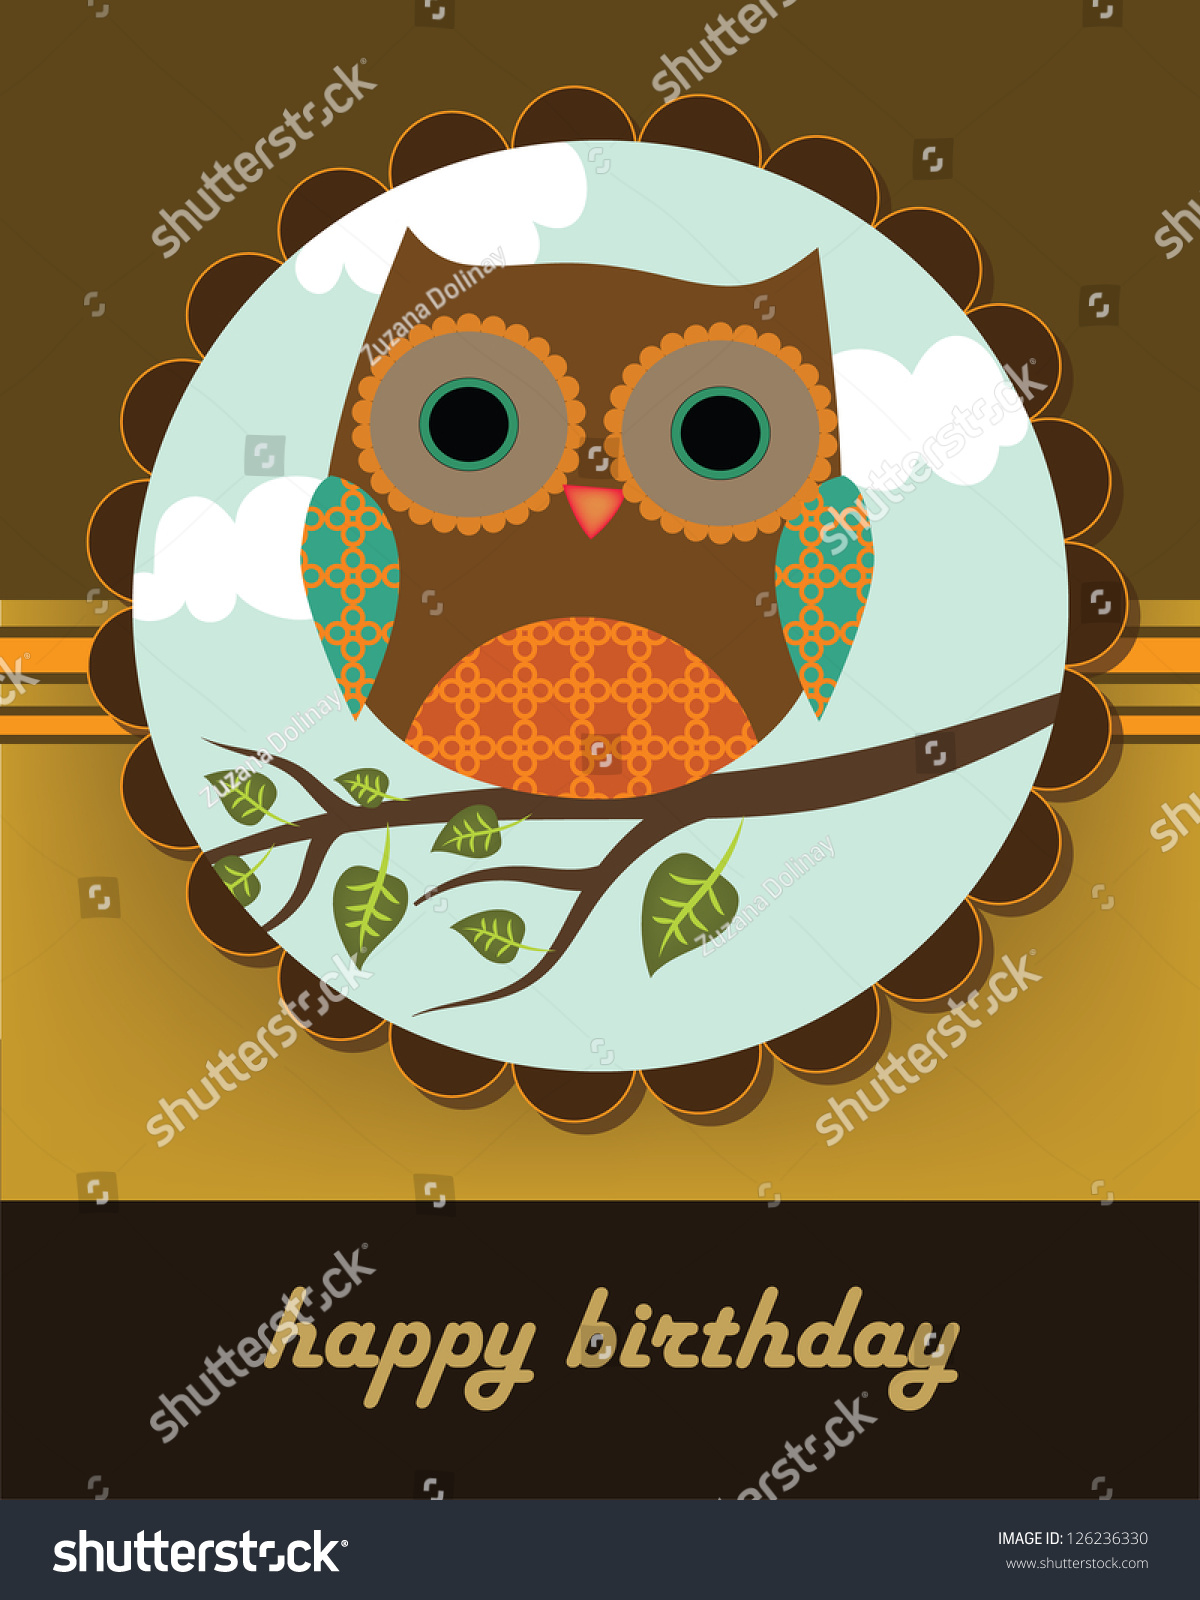 happy birthday card owl tree stock vector   shutterstock, Birthday card